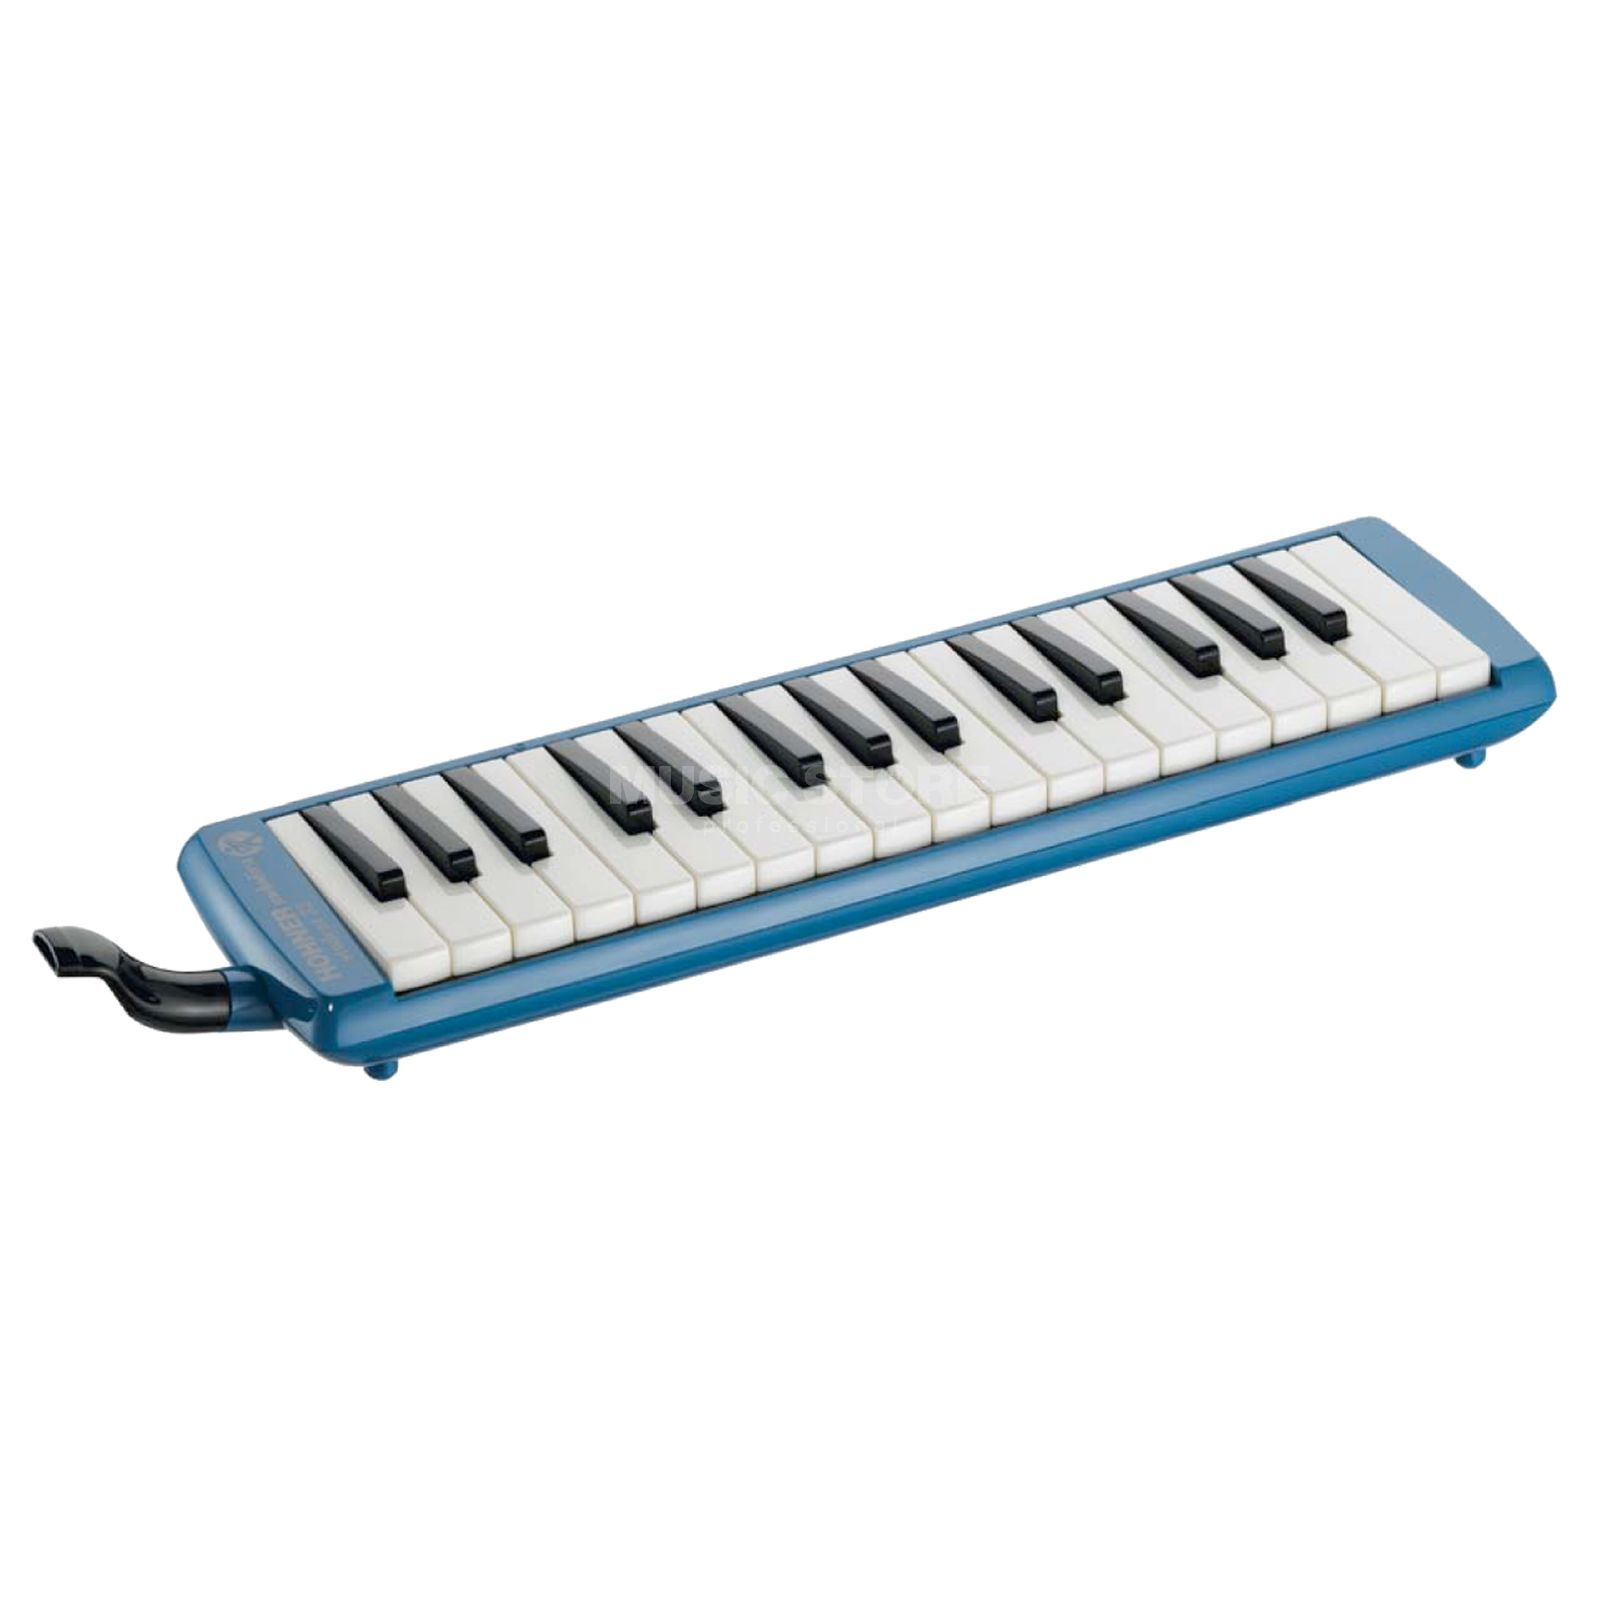 Hohner Studet Melodica 32 blauw incl. Etui en accessoires Productafbeelding